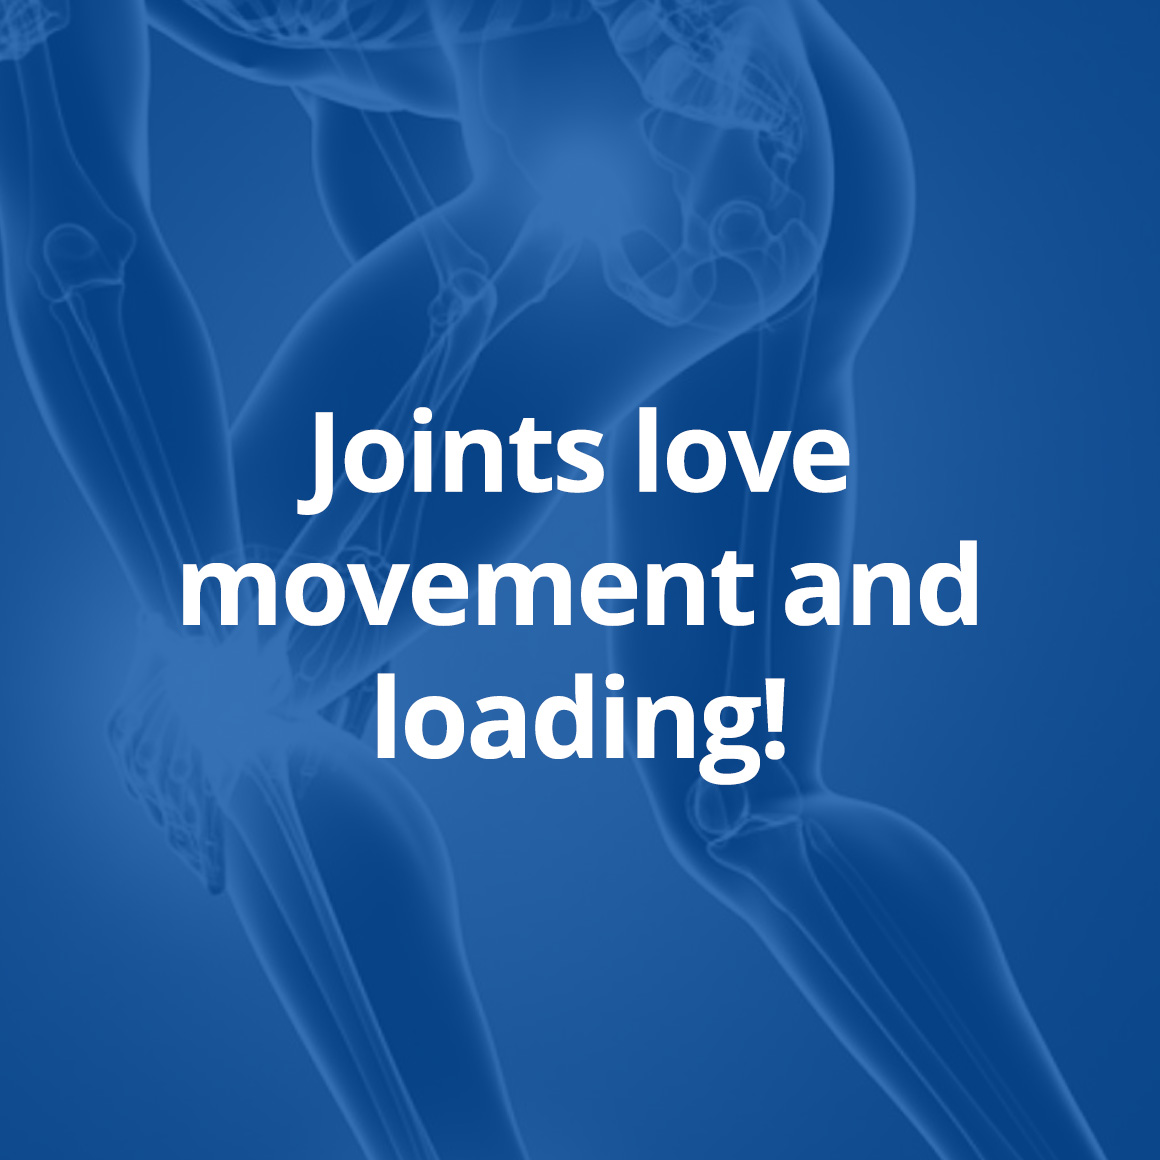 joints-love-movement